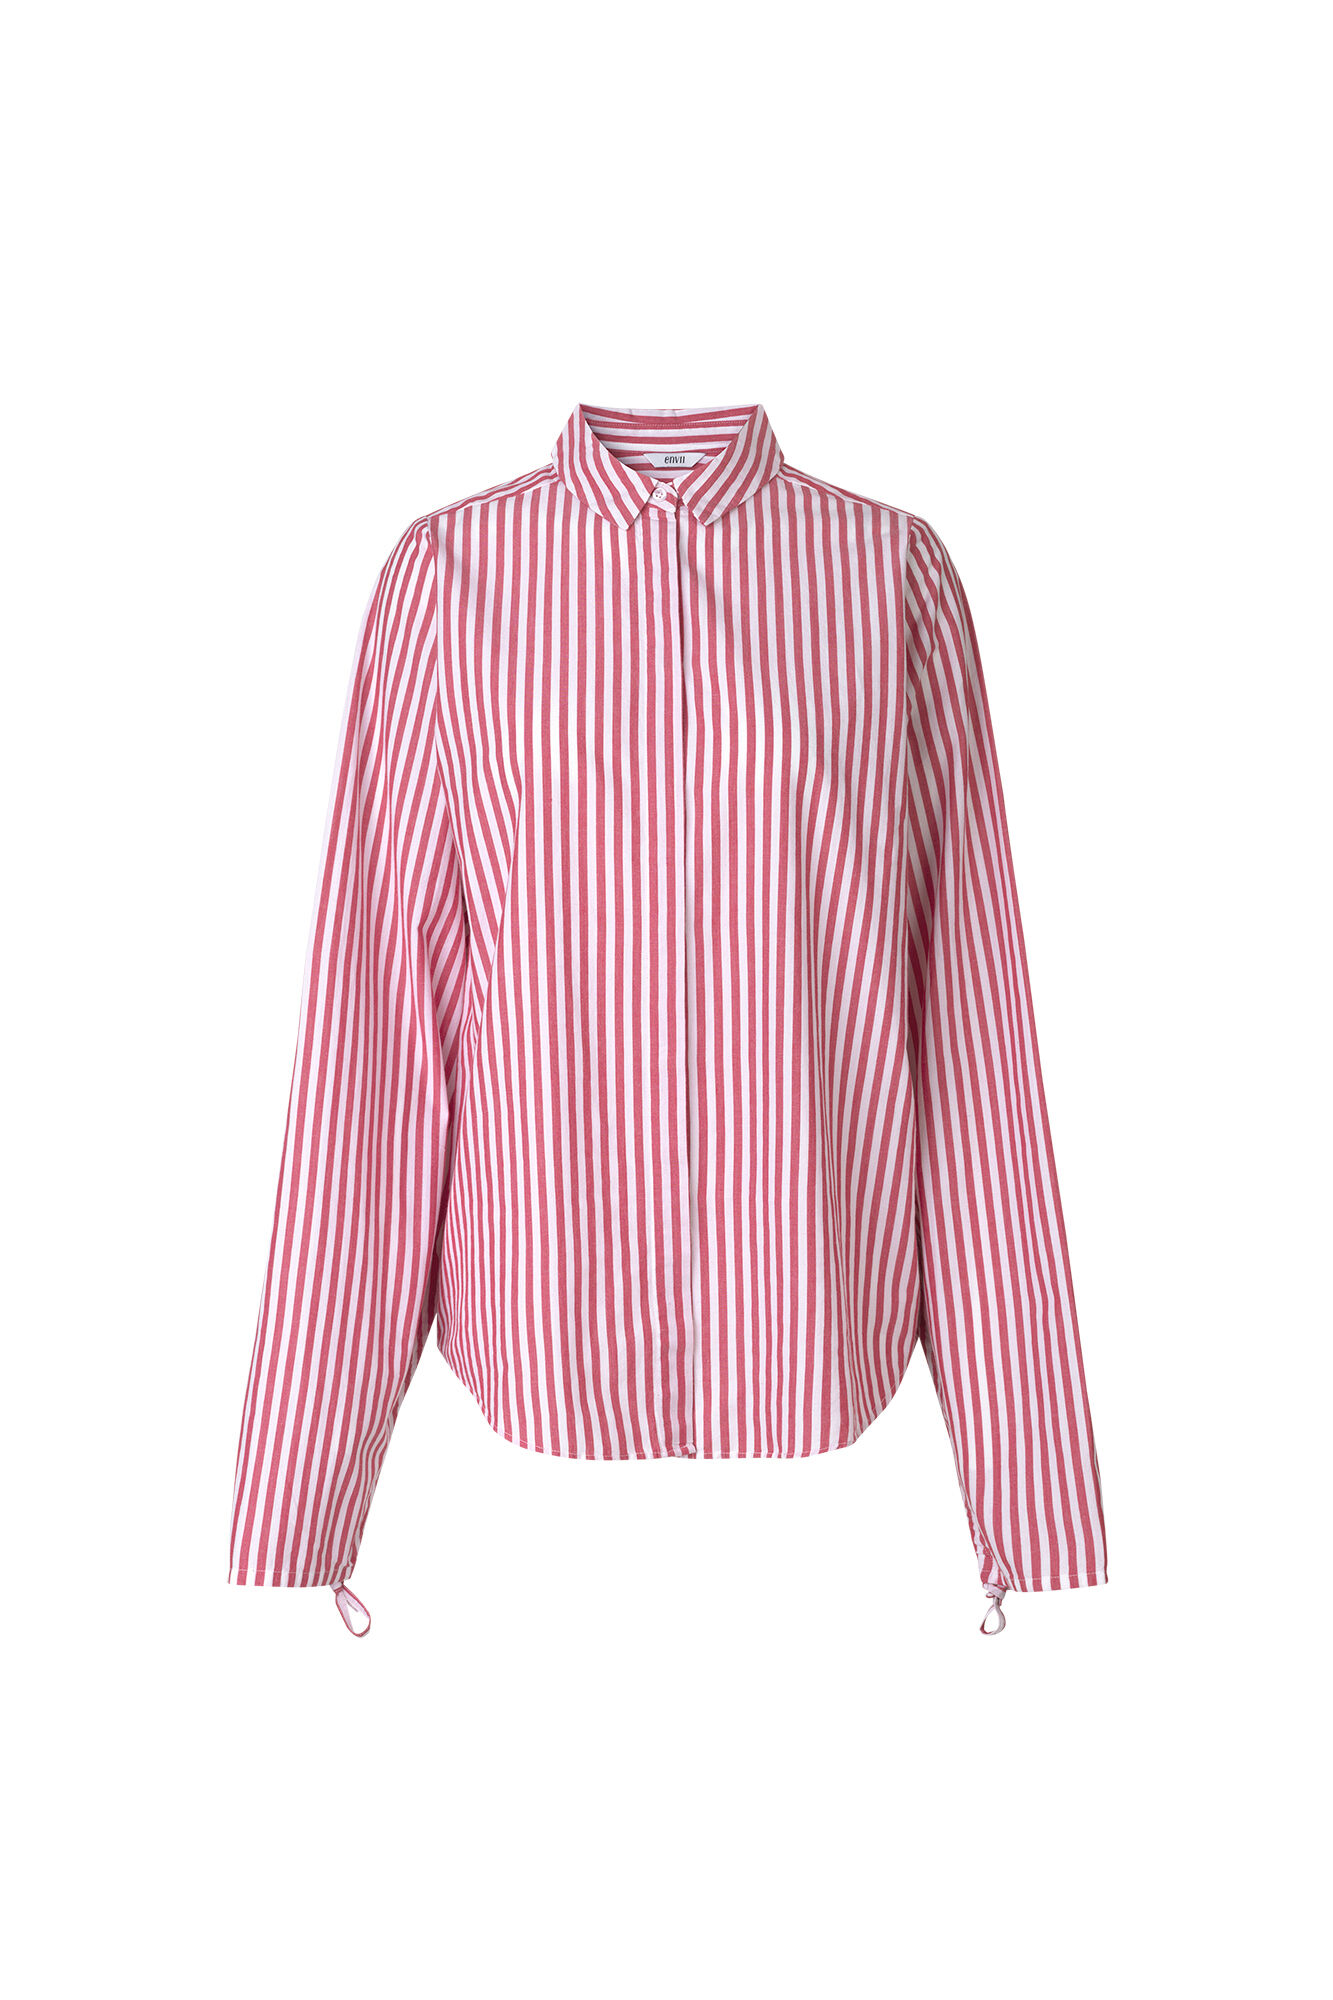 ENPOPCORN LS SHIRT 6433, RED-WHITE ST